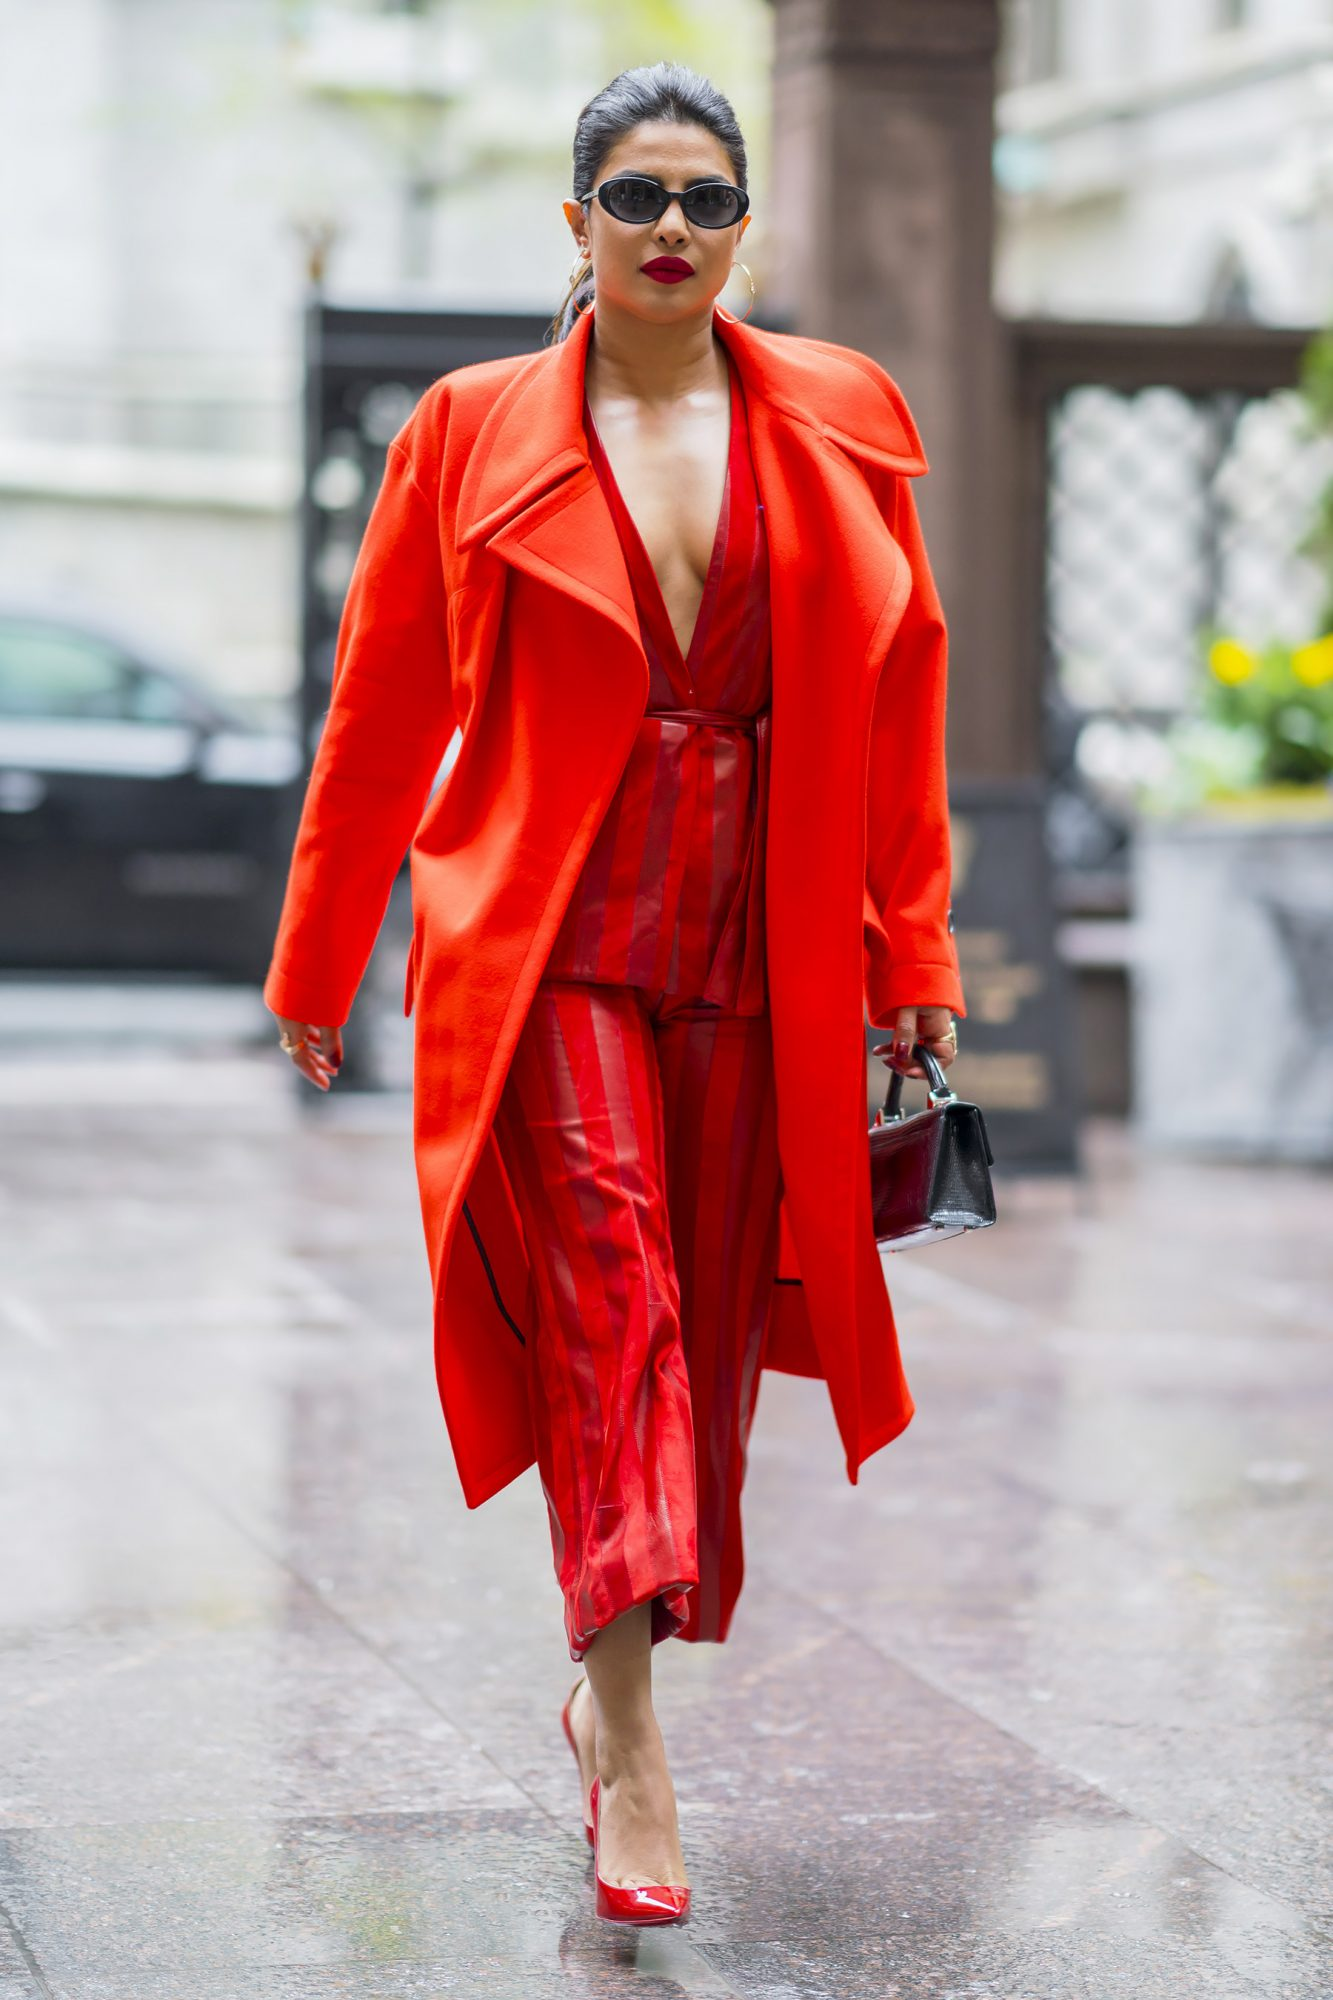 Priyanka Chopra is seen wearing all red Alejandro Alonso Rojas top and pants with a Vivienne Westwood jacket and Christian Louboutin shoes in Midtown